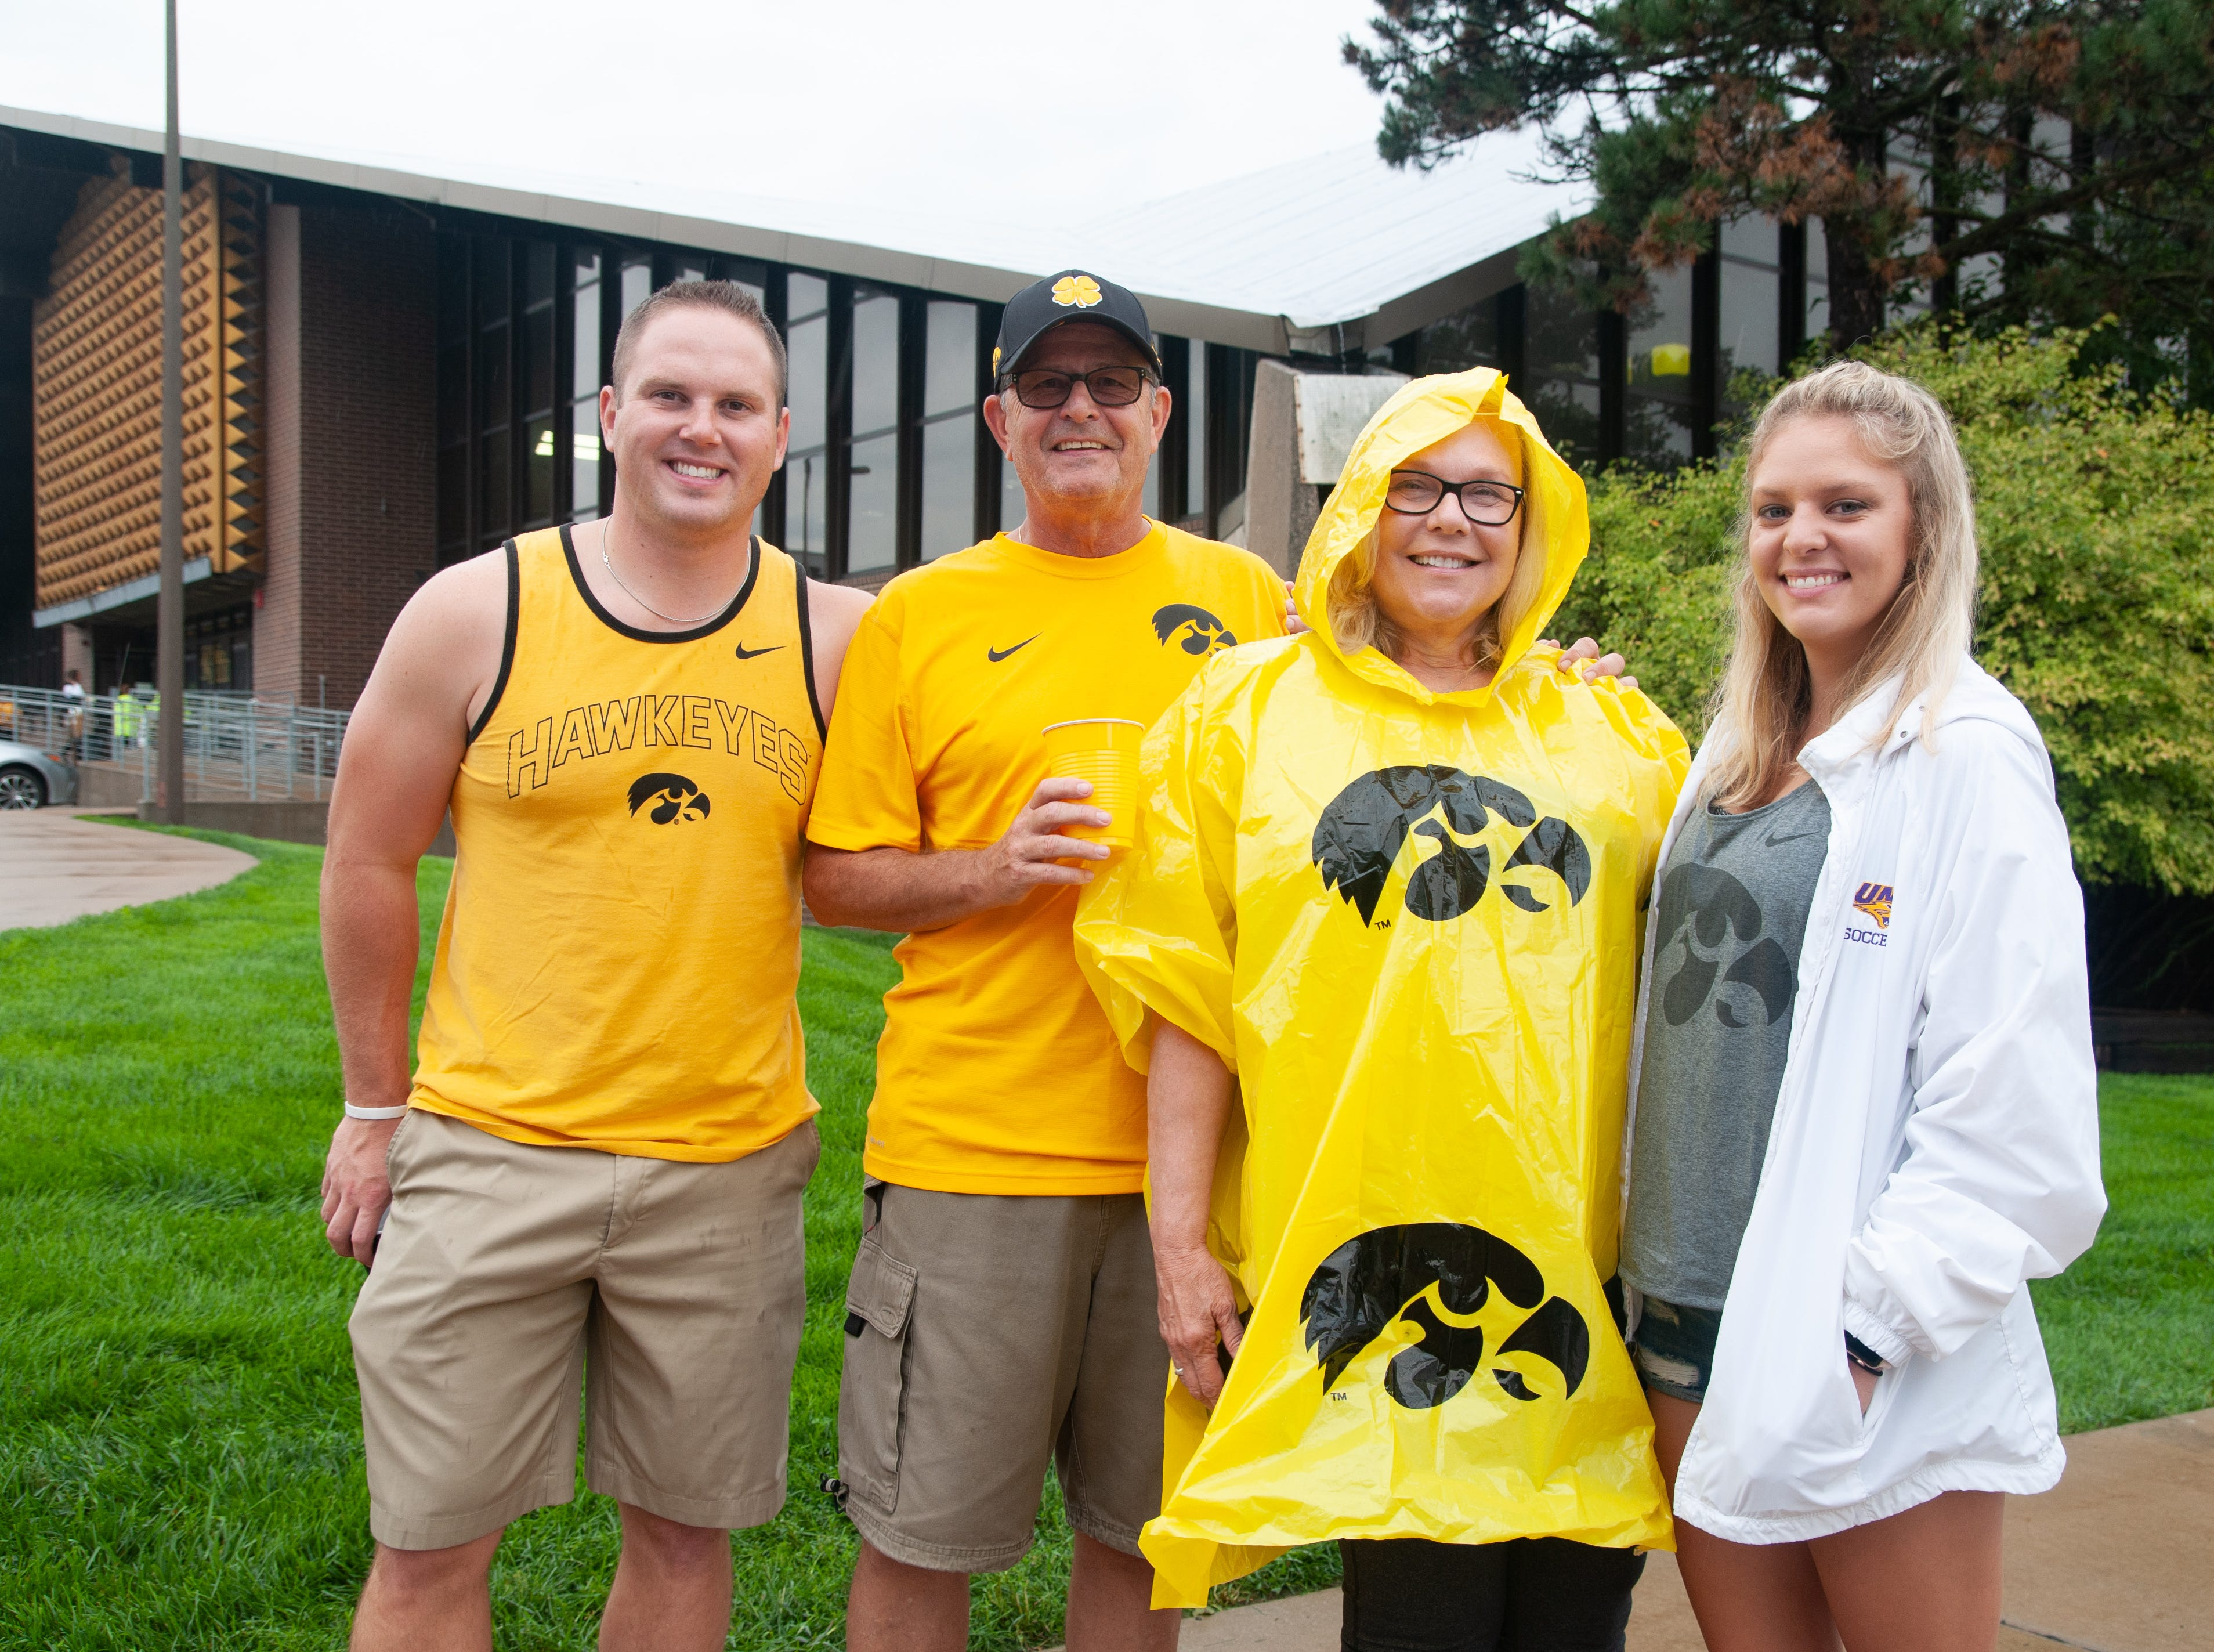 Zach Parsons, 26, (left), Craig Schulte, 65, Martha Parsons, 65, and Liz Parsons, 25, of Cedar Rapids and Mount Vernon, Saturday, Sept. 1, 2018, while tailgating before the Iowa game against Northern Illinois in Iowa City.